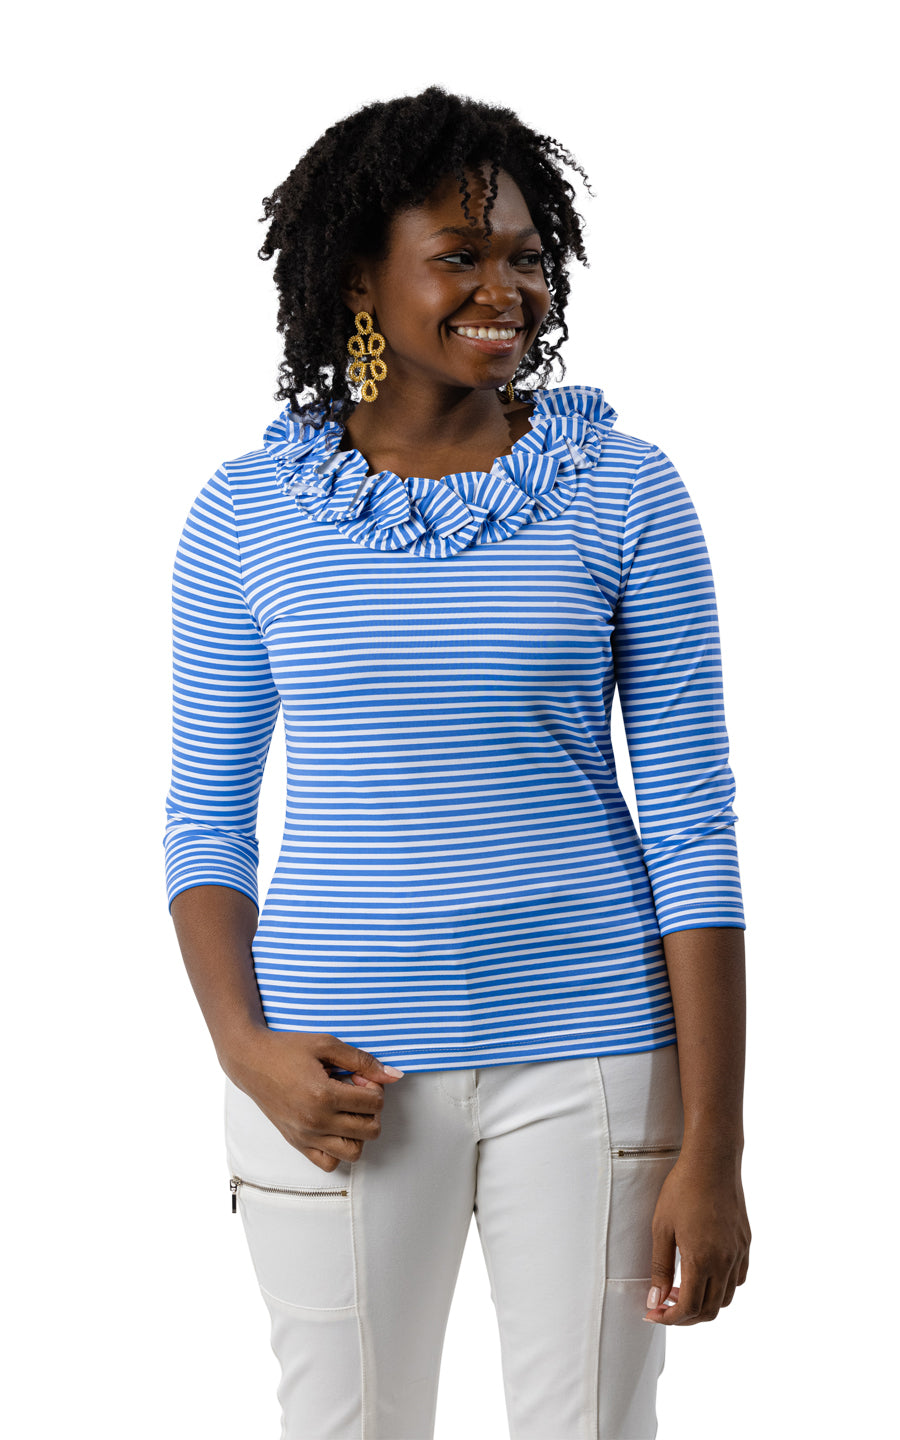 Cricket Top 3/4 - Regatta Blue/White Stripe